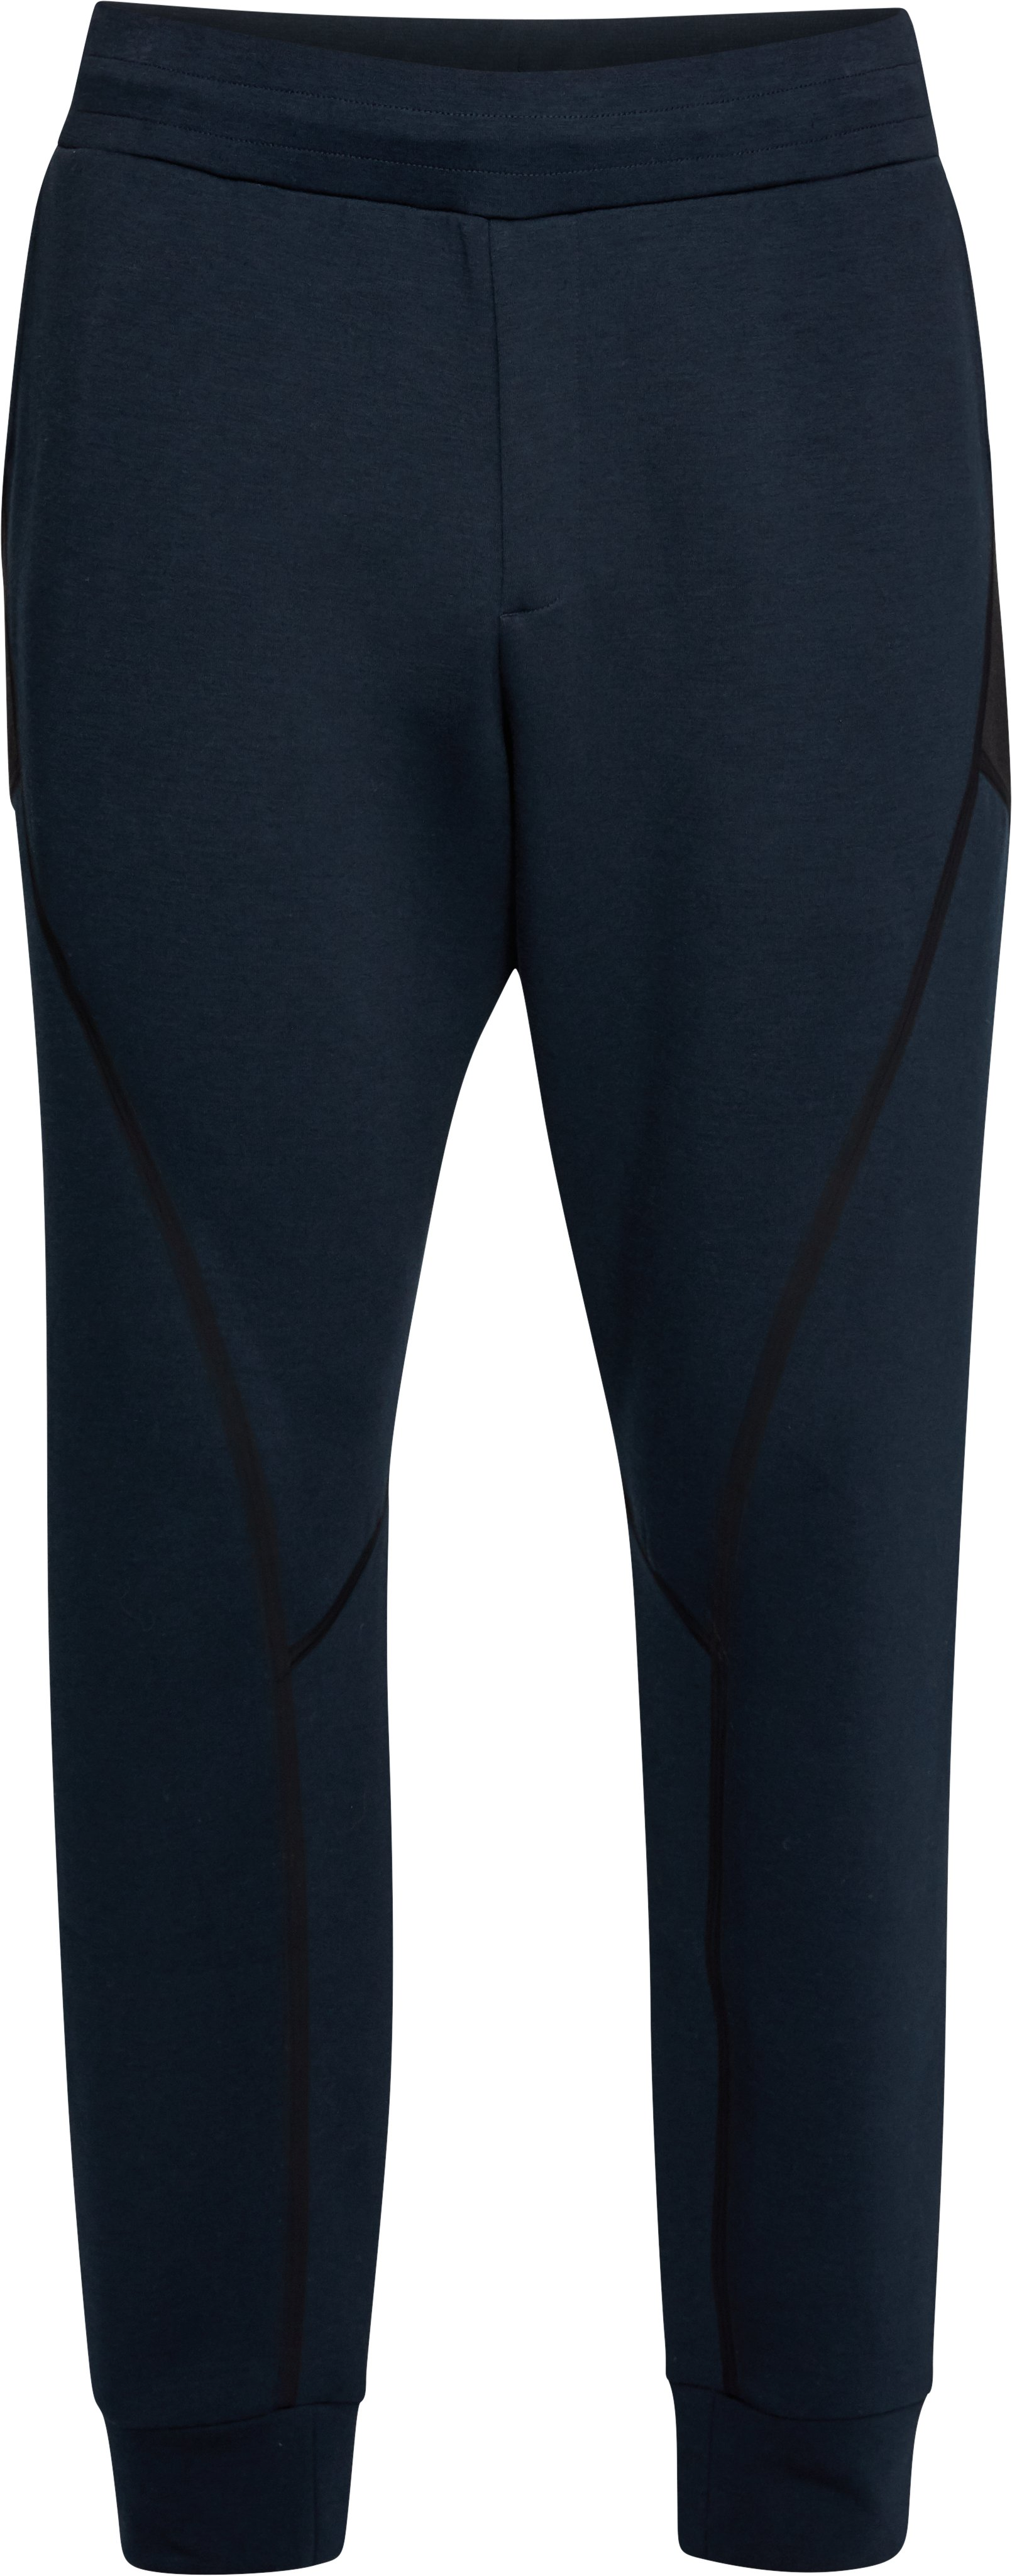 Men's UAS Tailgate Sweatpants, Navy,